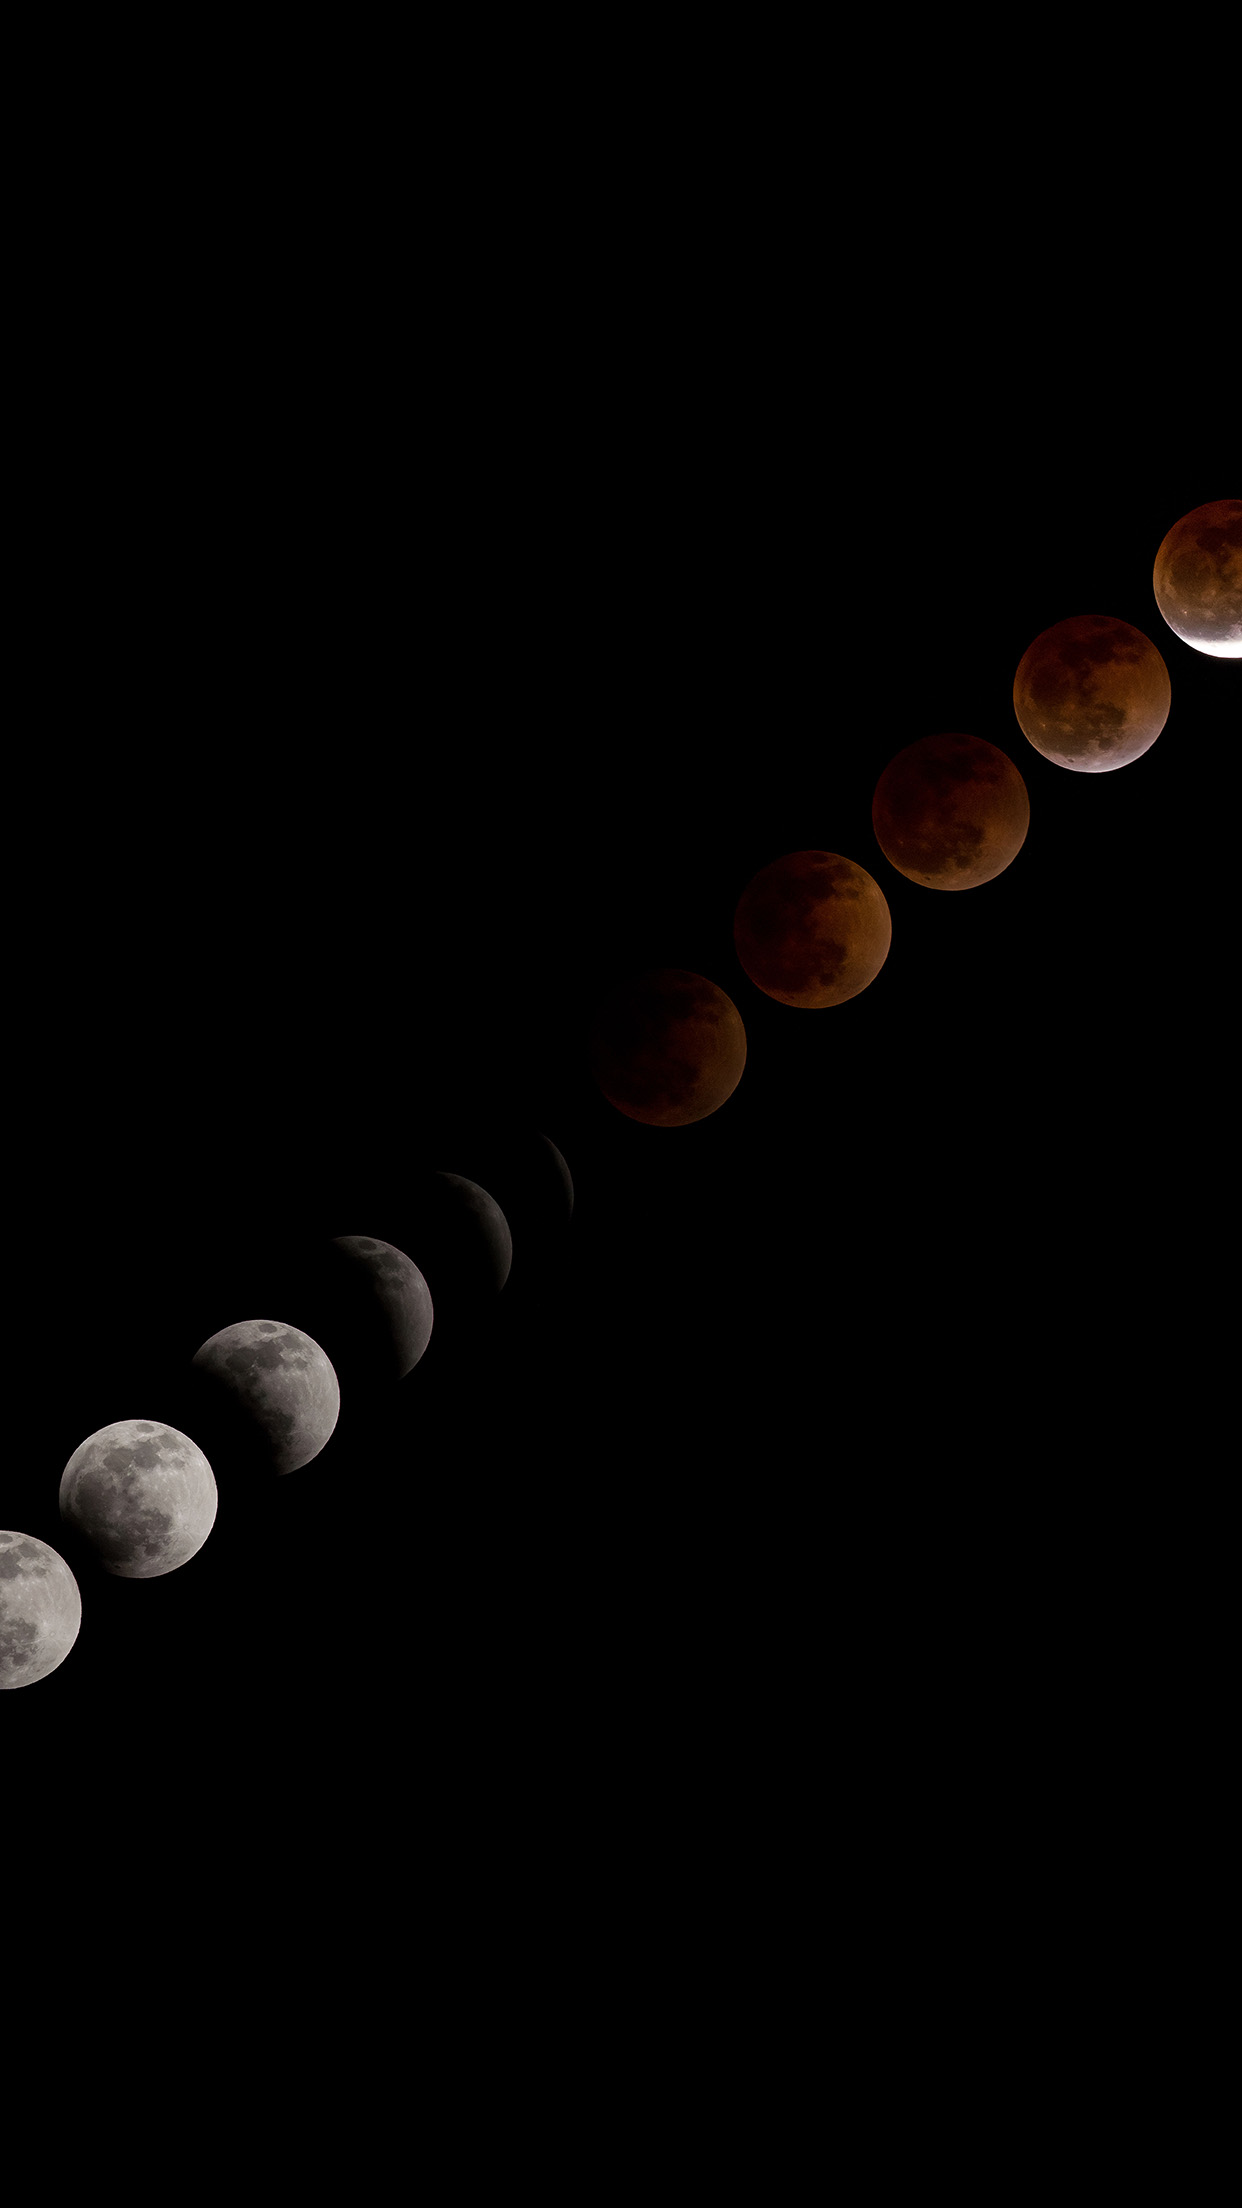 Blood Moon Lunar Eclipse Android wallpaper